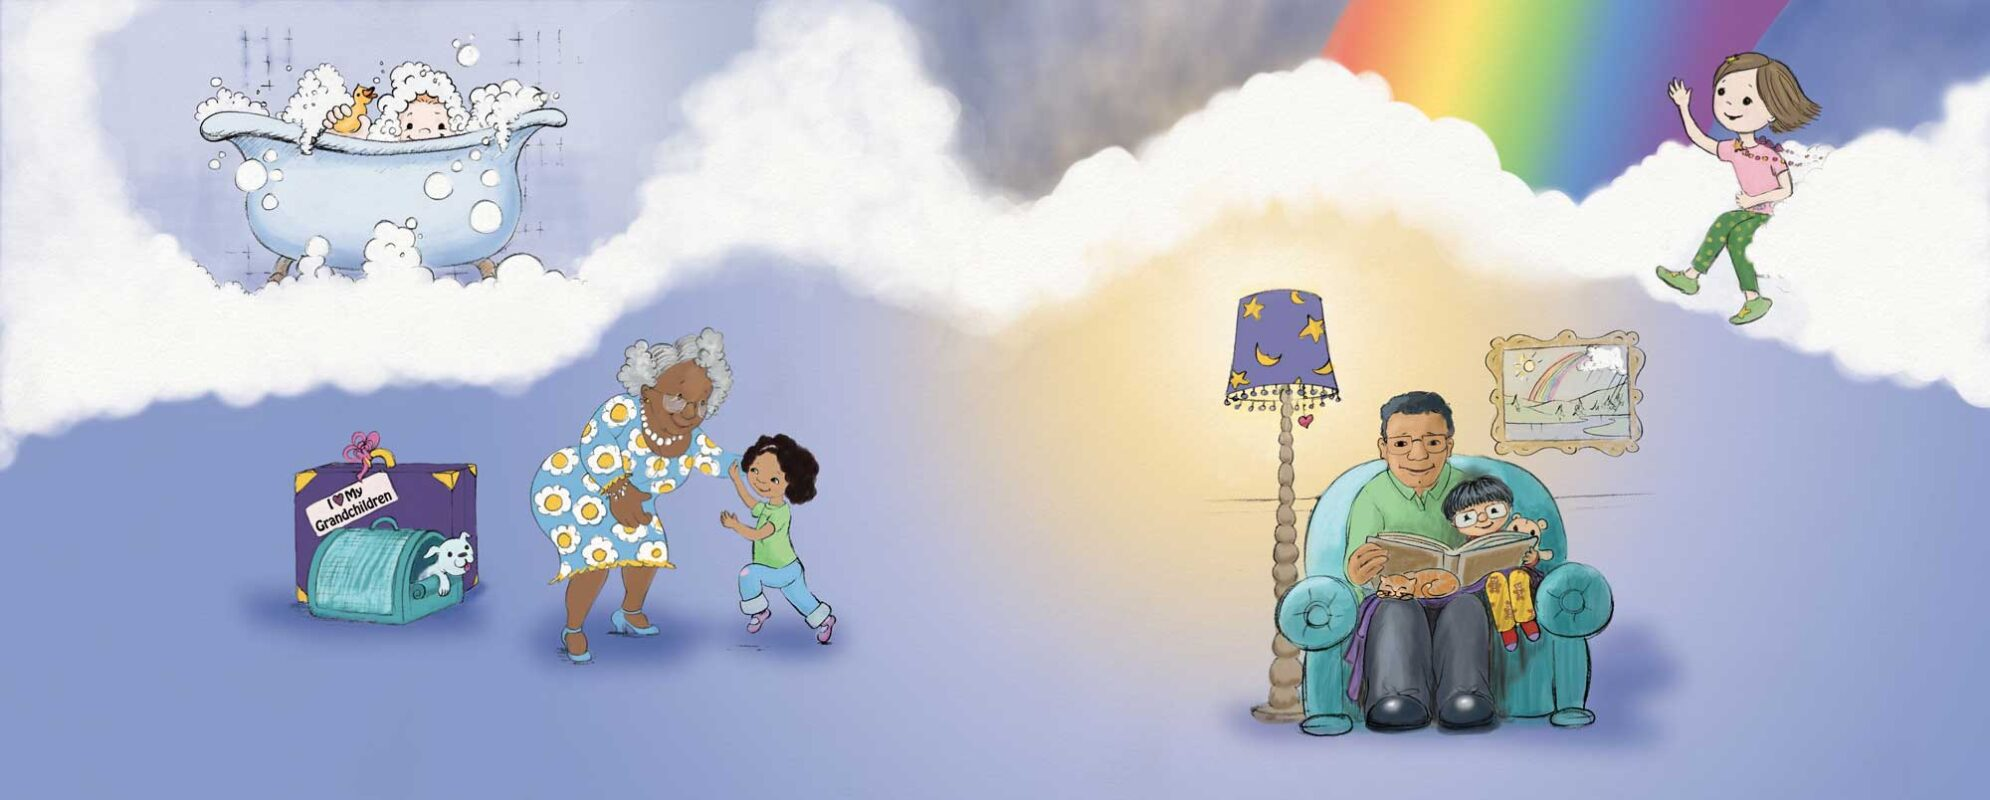 illustration of children with family from children's book, Wehn You Just Have To Roar, Illustration by Priscilla Prentice